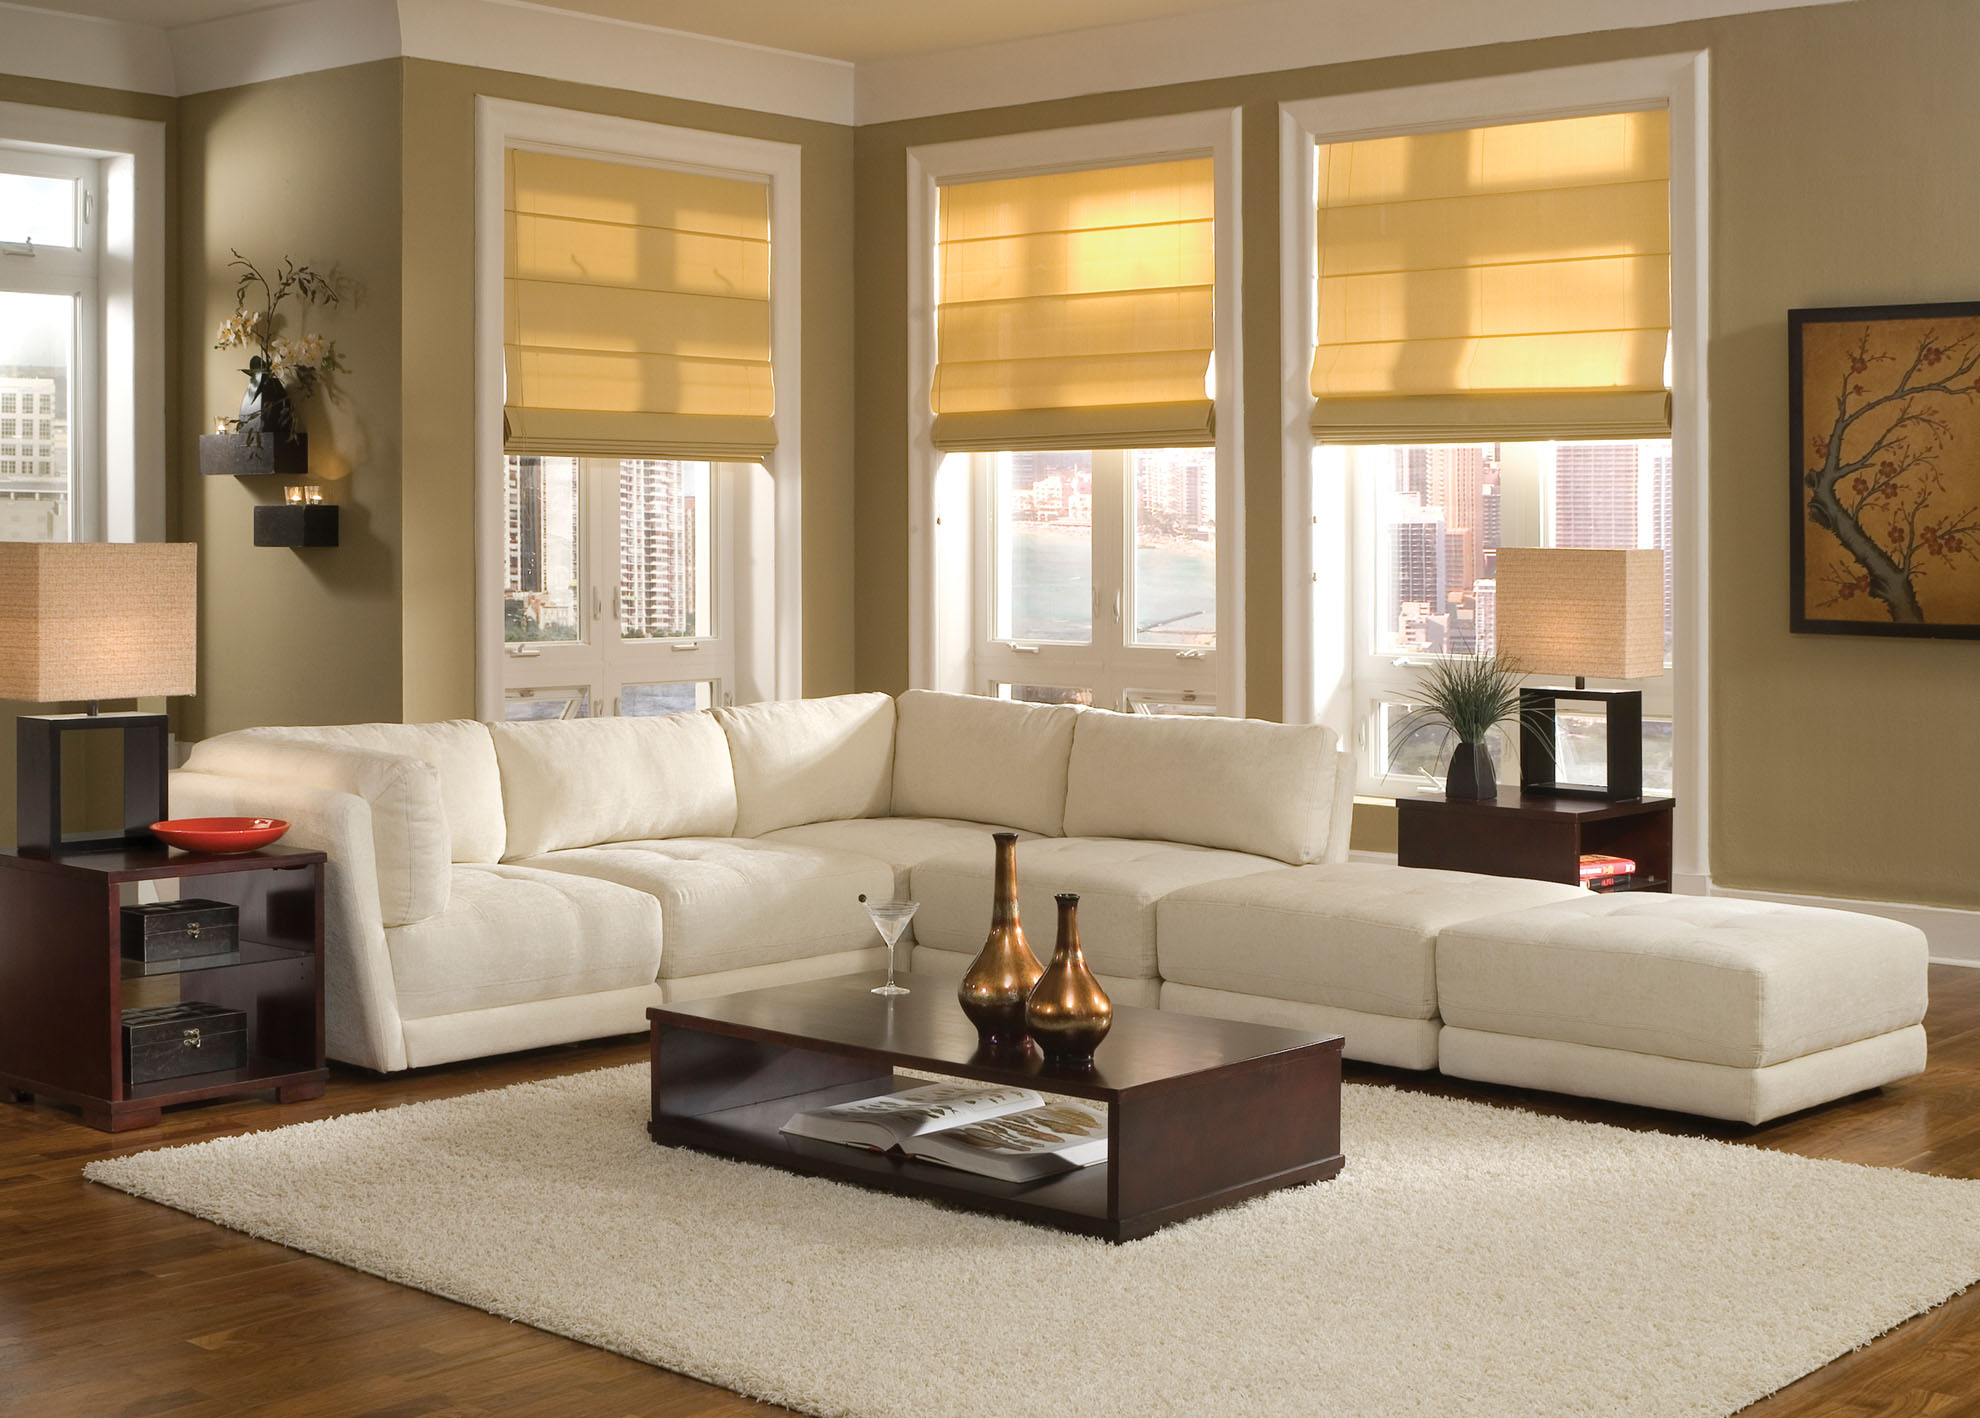 White Furniture Living Room Decorating White Sofa Design Ideas Pictures For Living Room